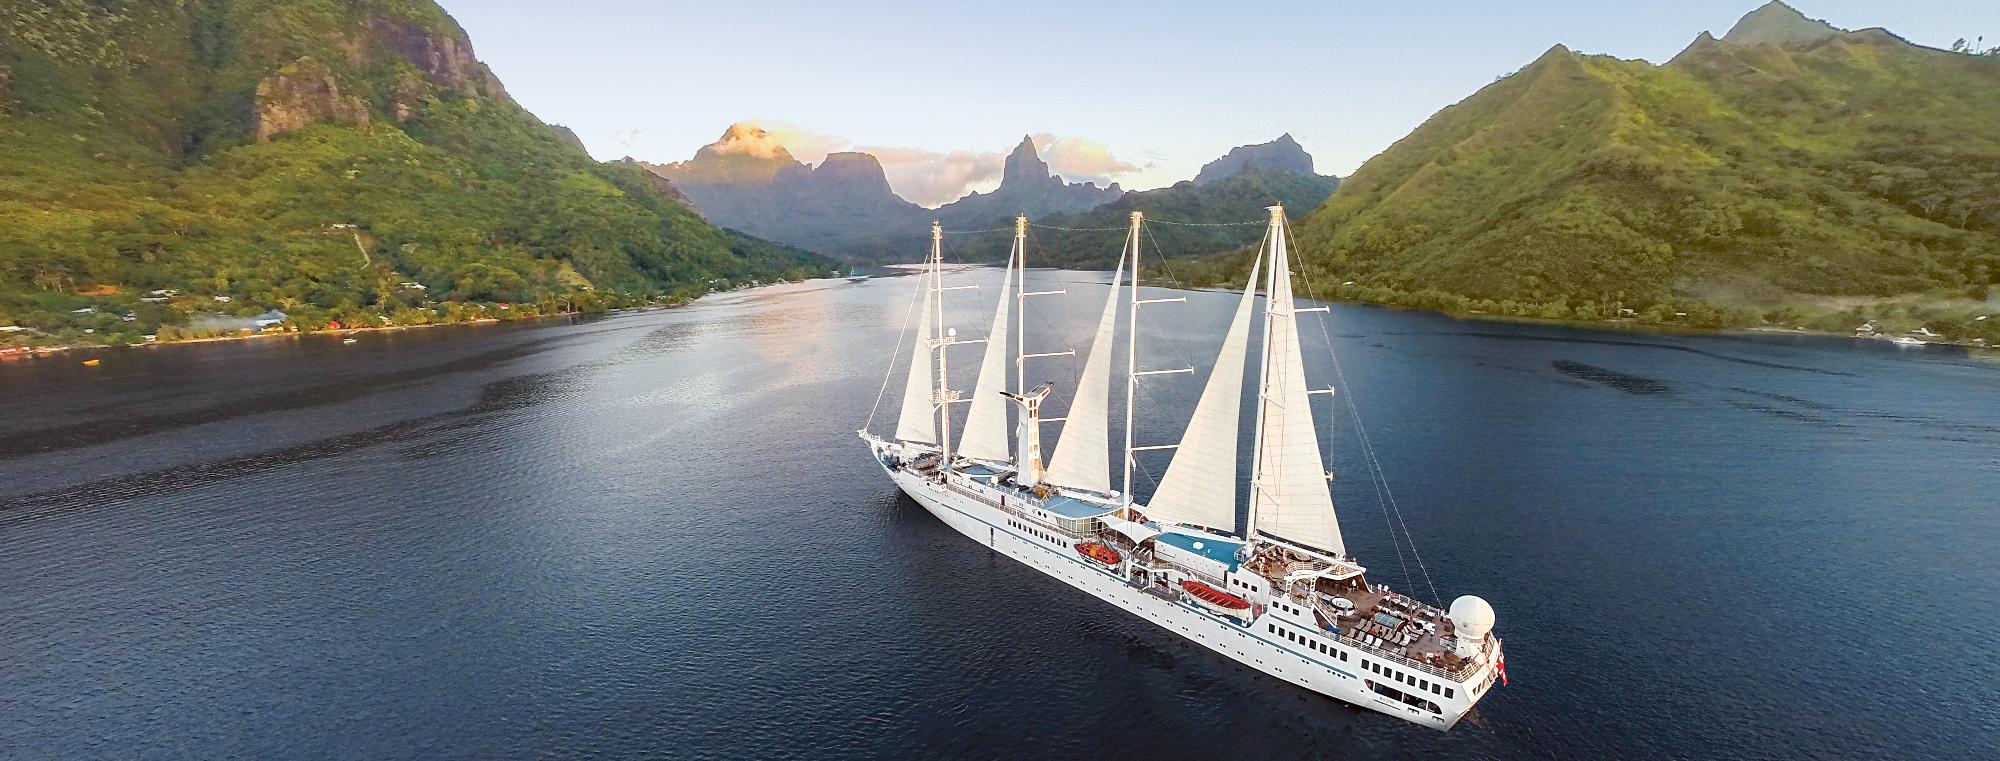 Windstar Cruises 7 for 7